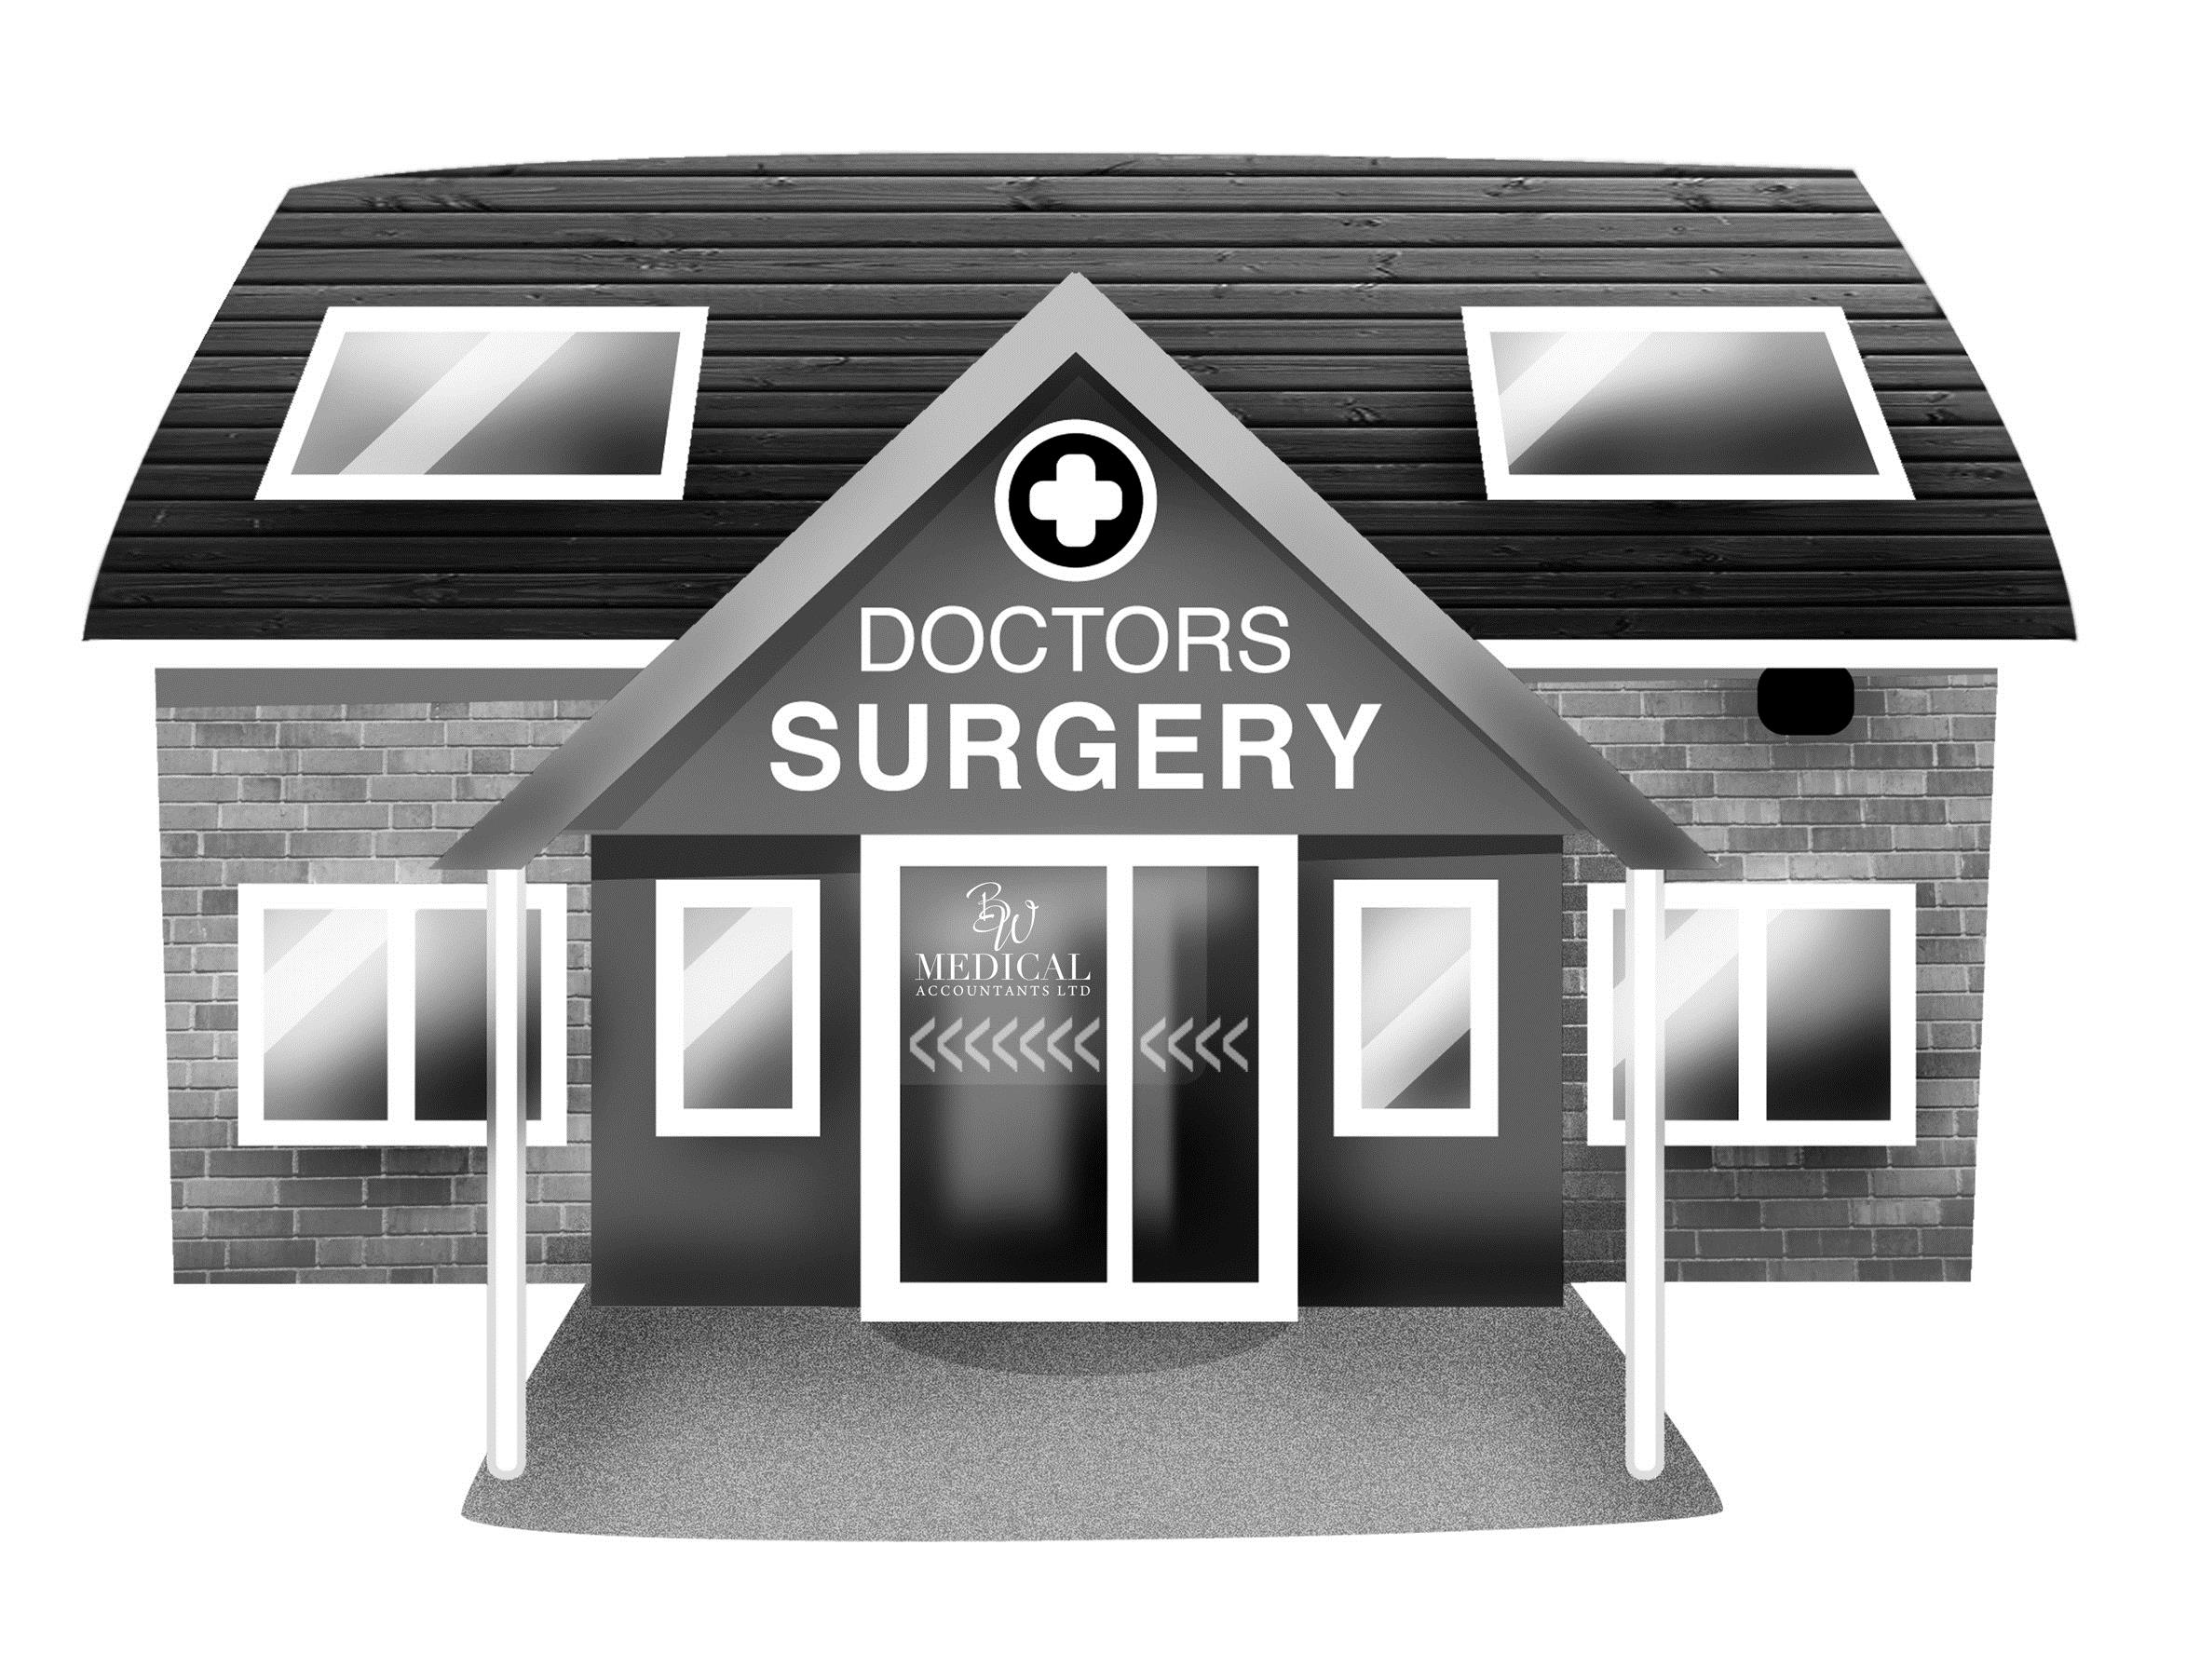 Building clipart doctors surgery True unfunded of unfunded of